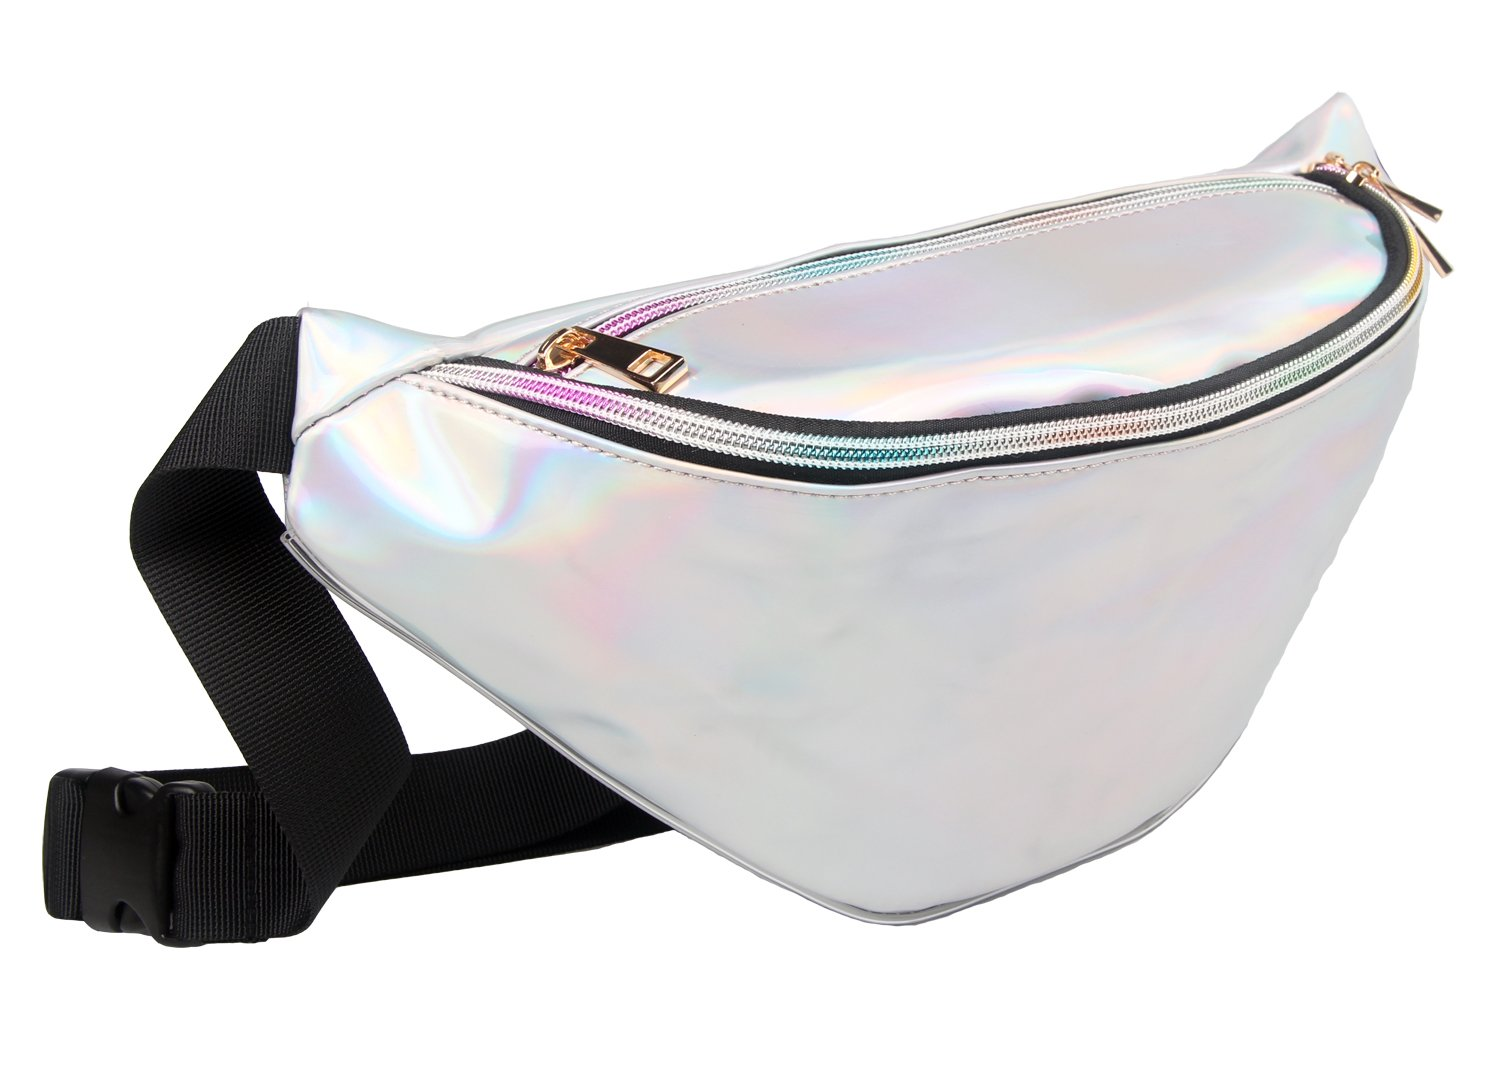 b97c9d475 Fanny Pack Waist Bag Women Pouch Bum Holographic Iridescence Shiny  Adjustable Band for Vacation Party Lorencia